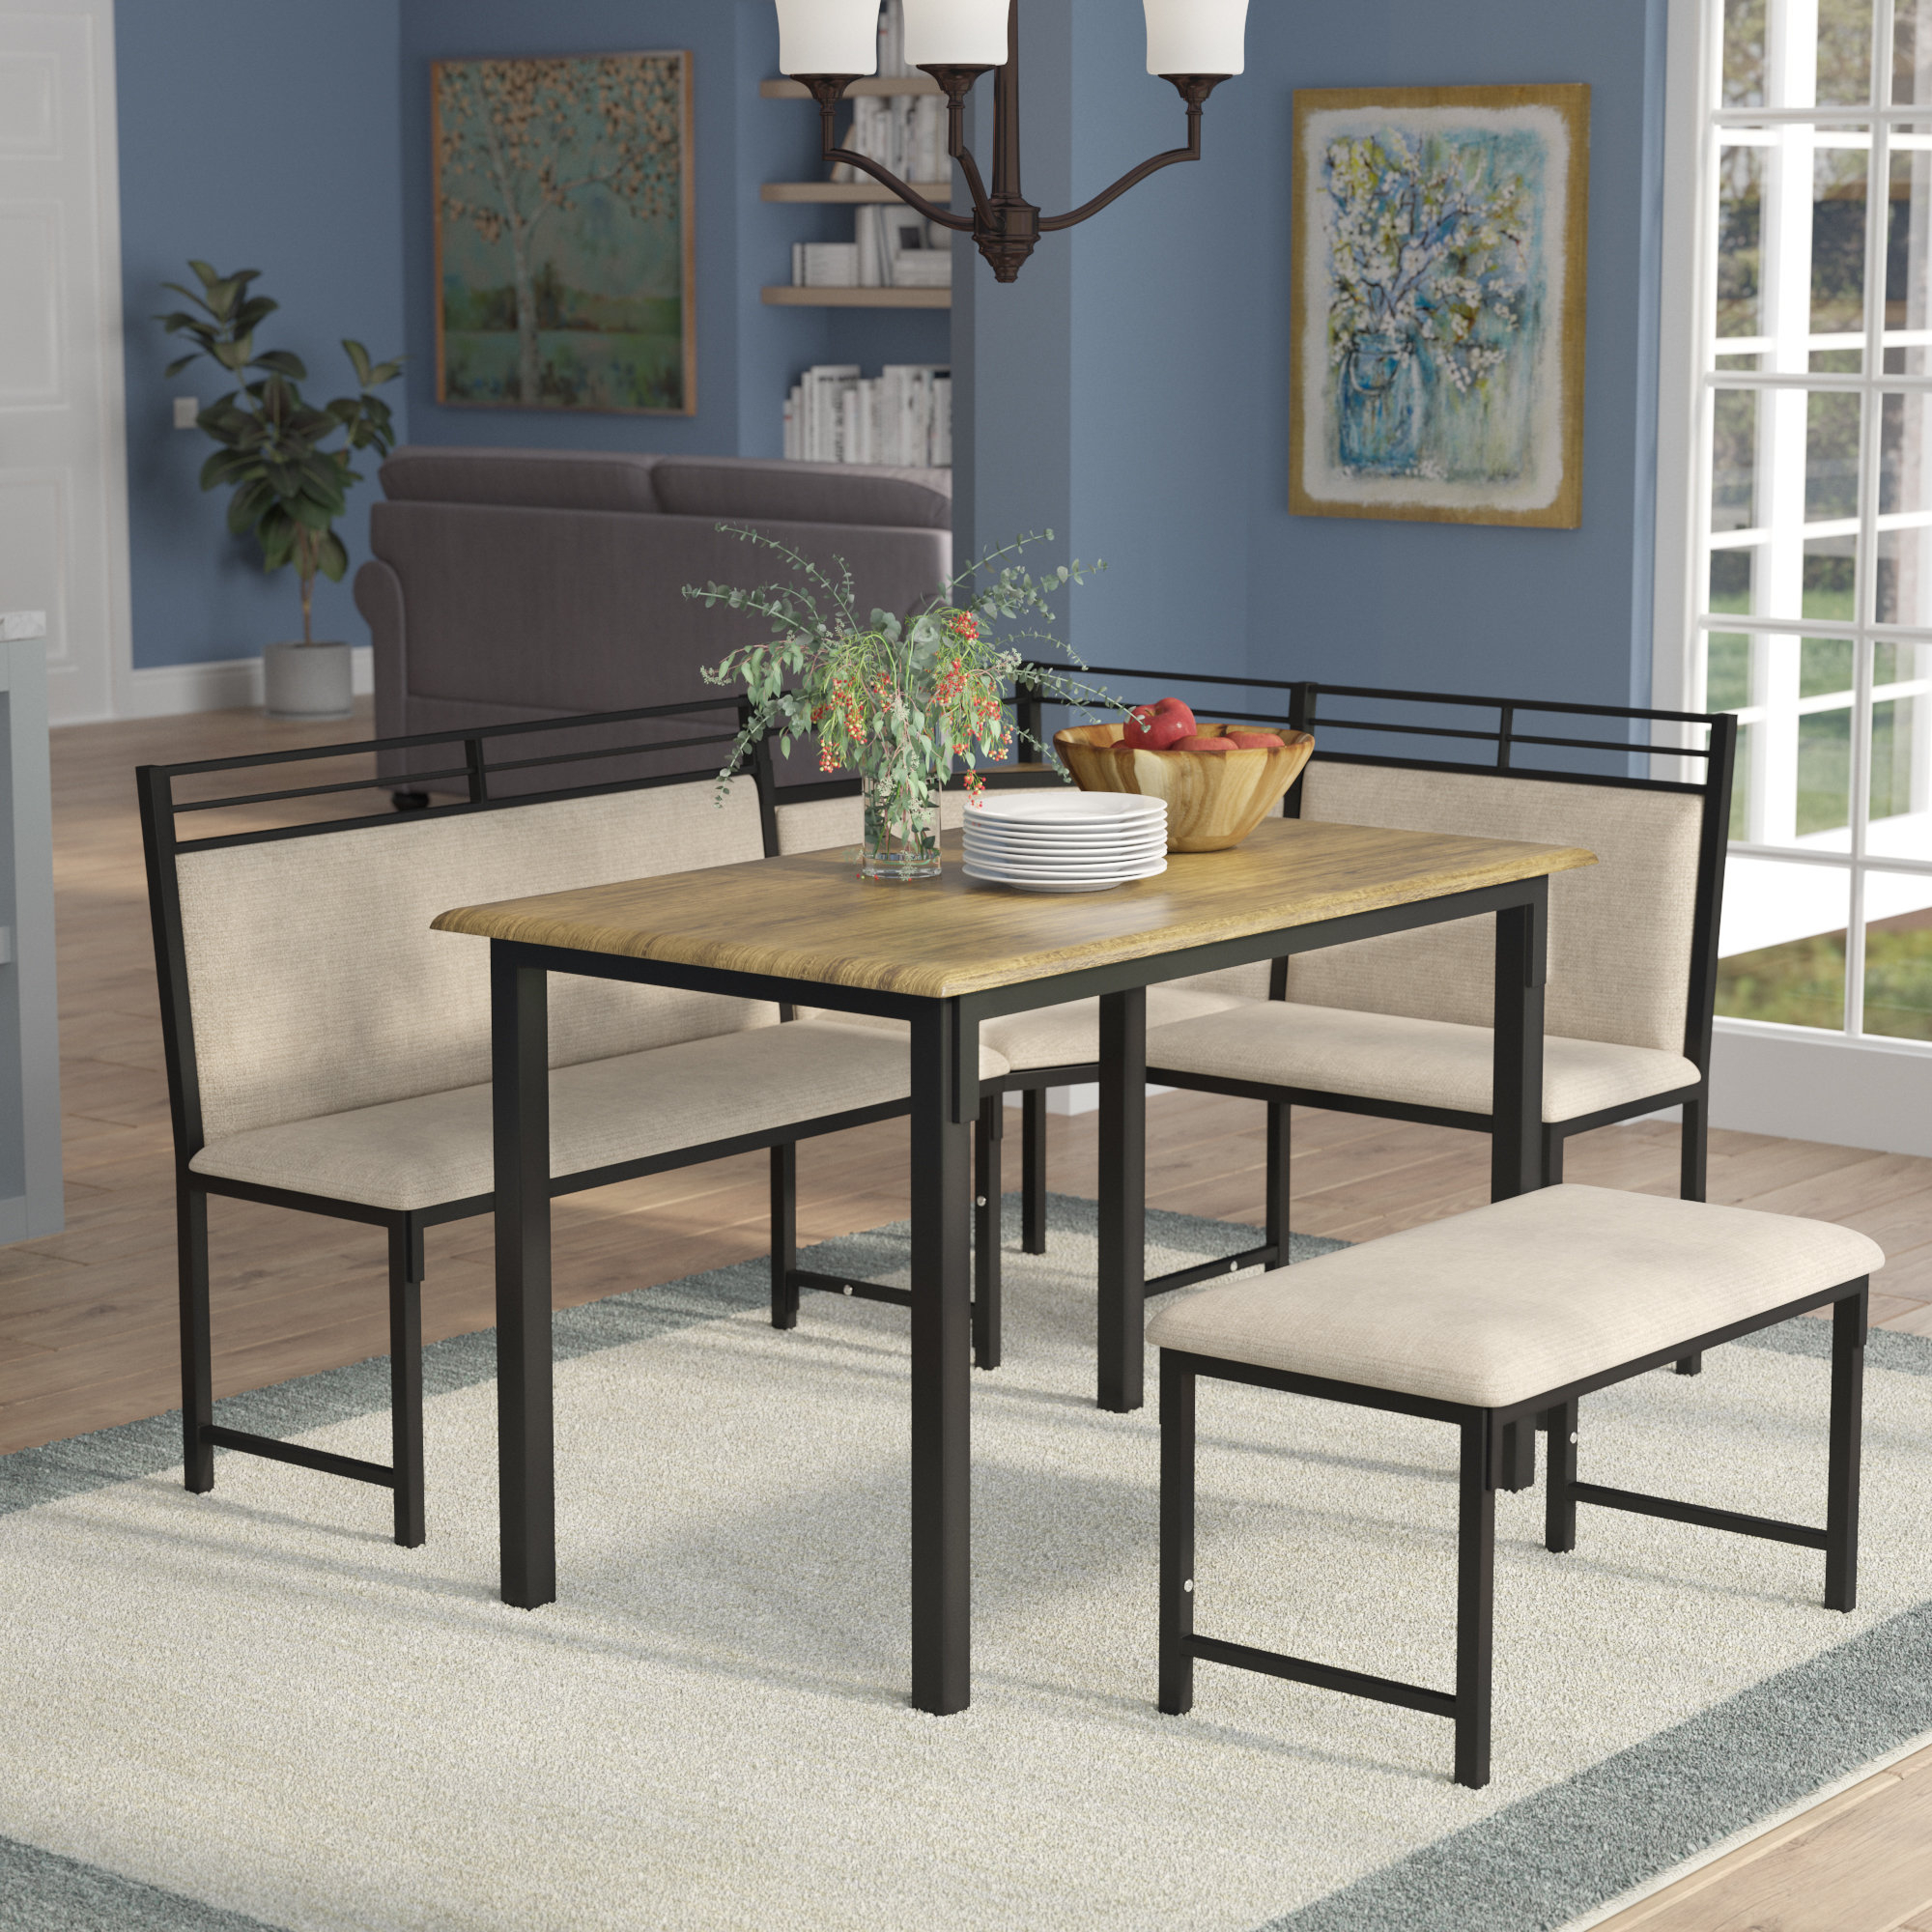 Moonachie Corner 3 Piece Dining Set Within 2018 Rossiter 3 Piece Dining Sets (Photo 11 of 20)